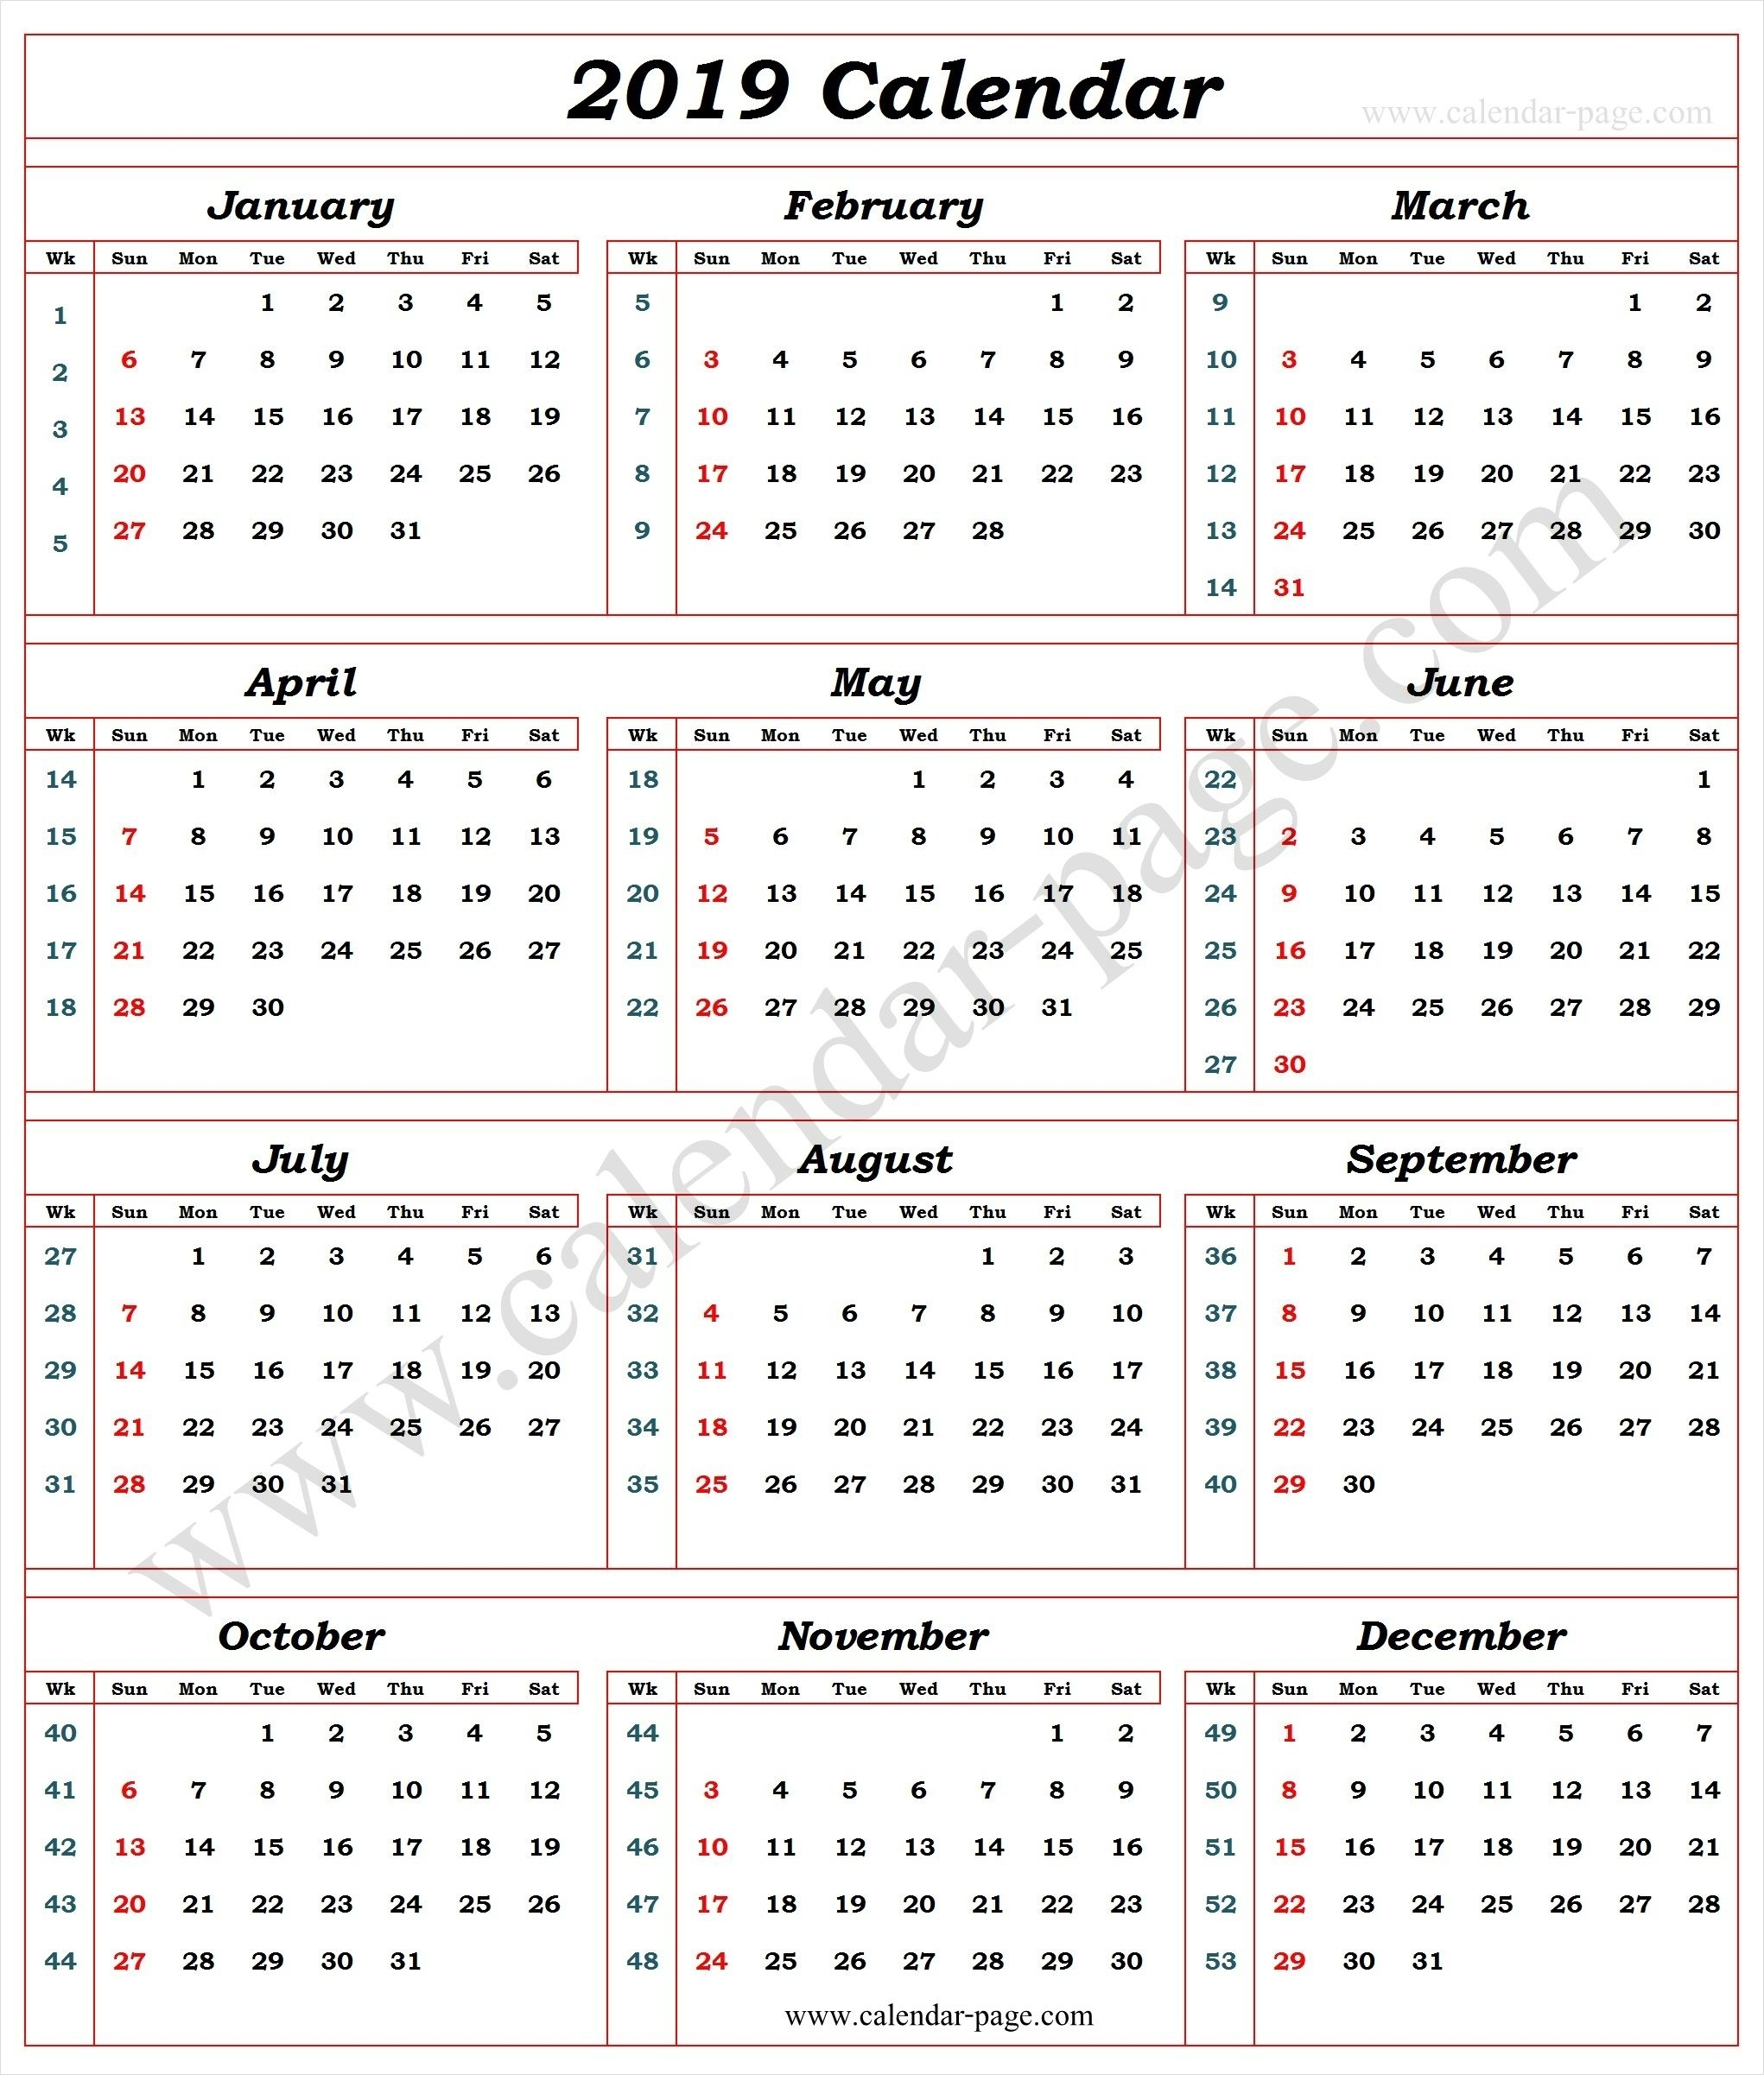 Calendar 2019 With Week Numbers | Calendar With Week Numbers